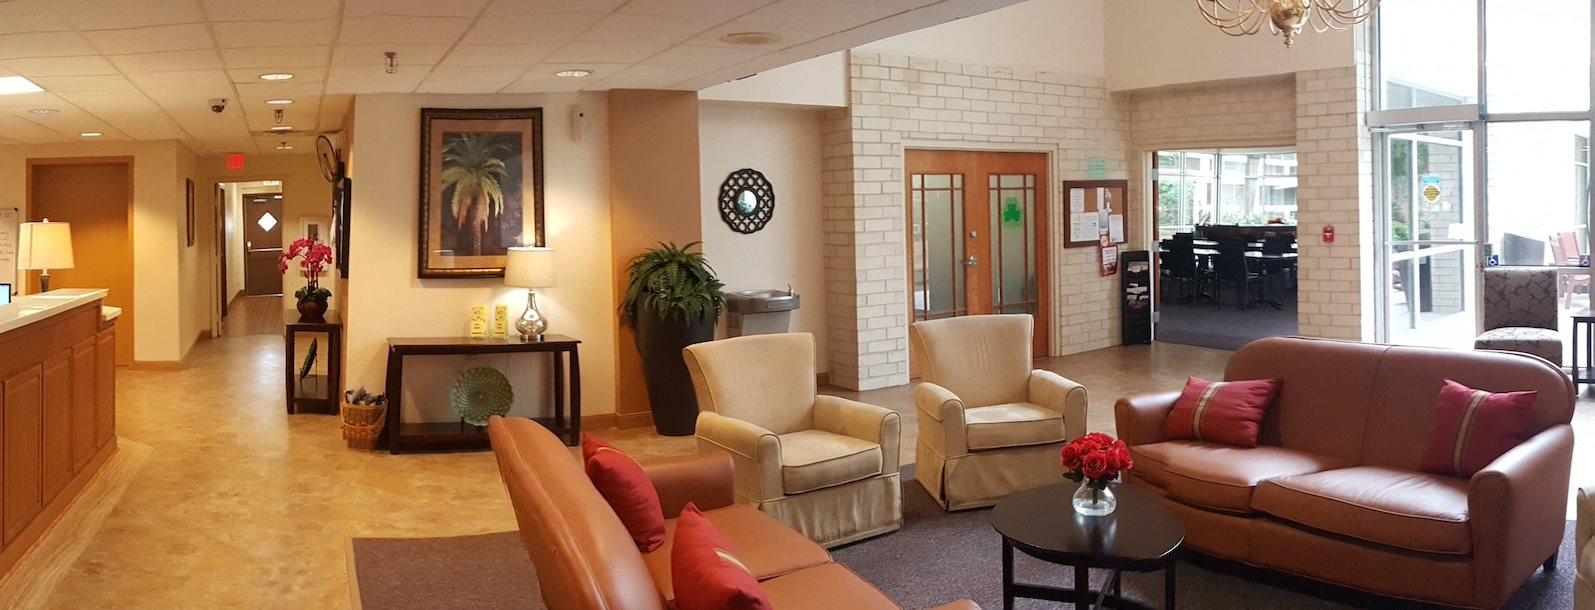 Reception area and furnished lobby of Sundale Manor